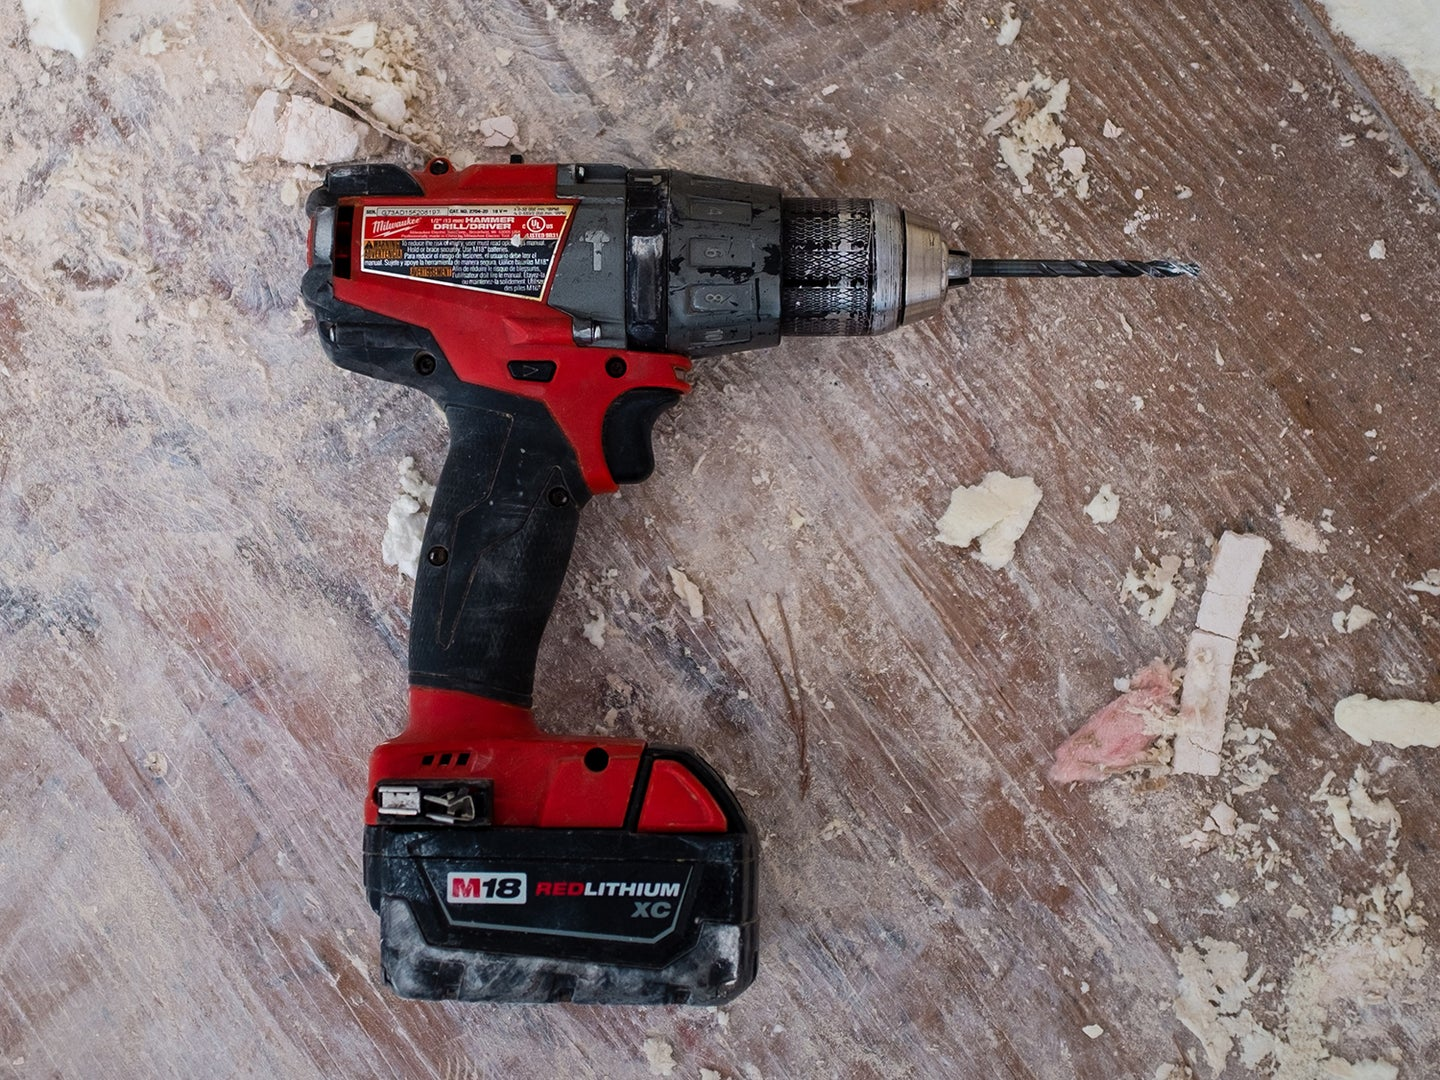 Red cordless drill